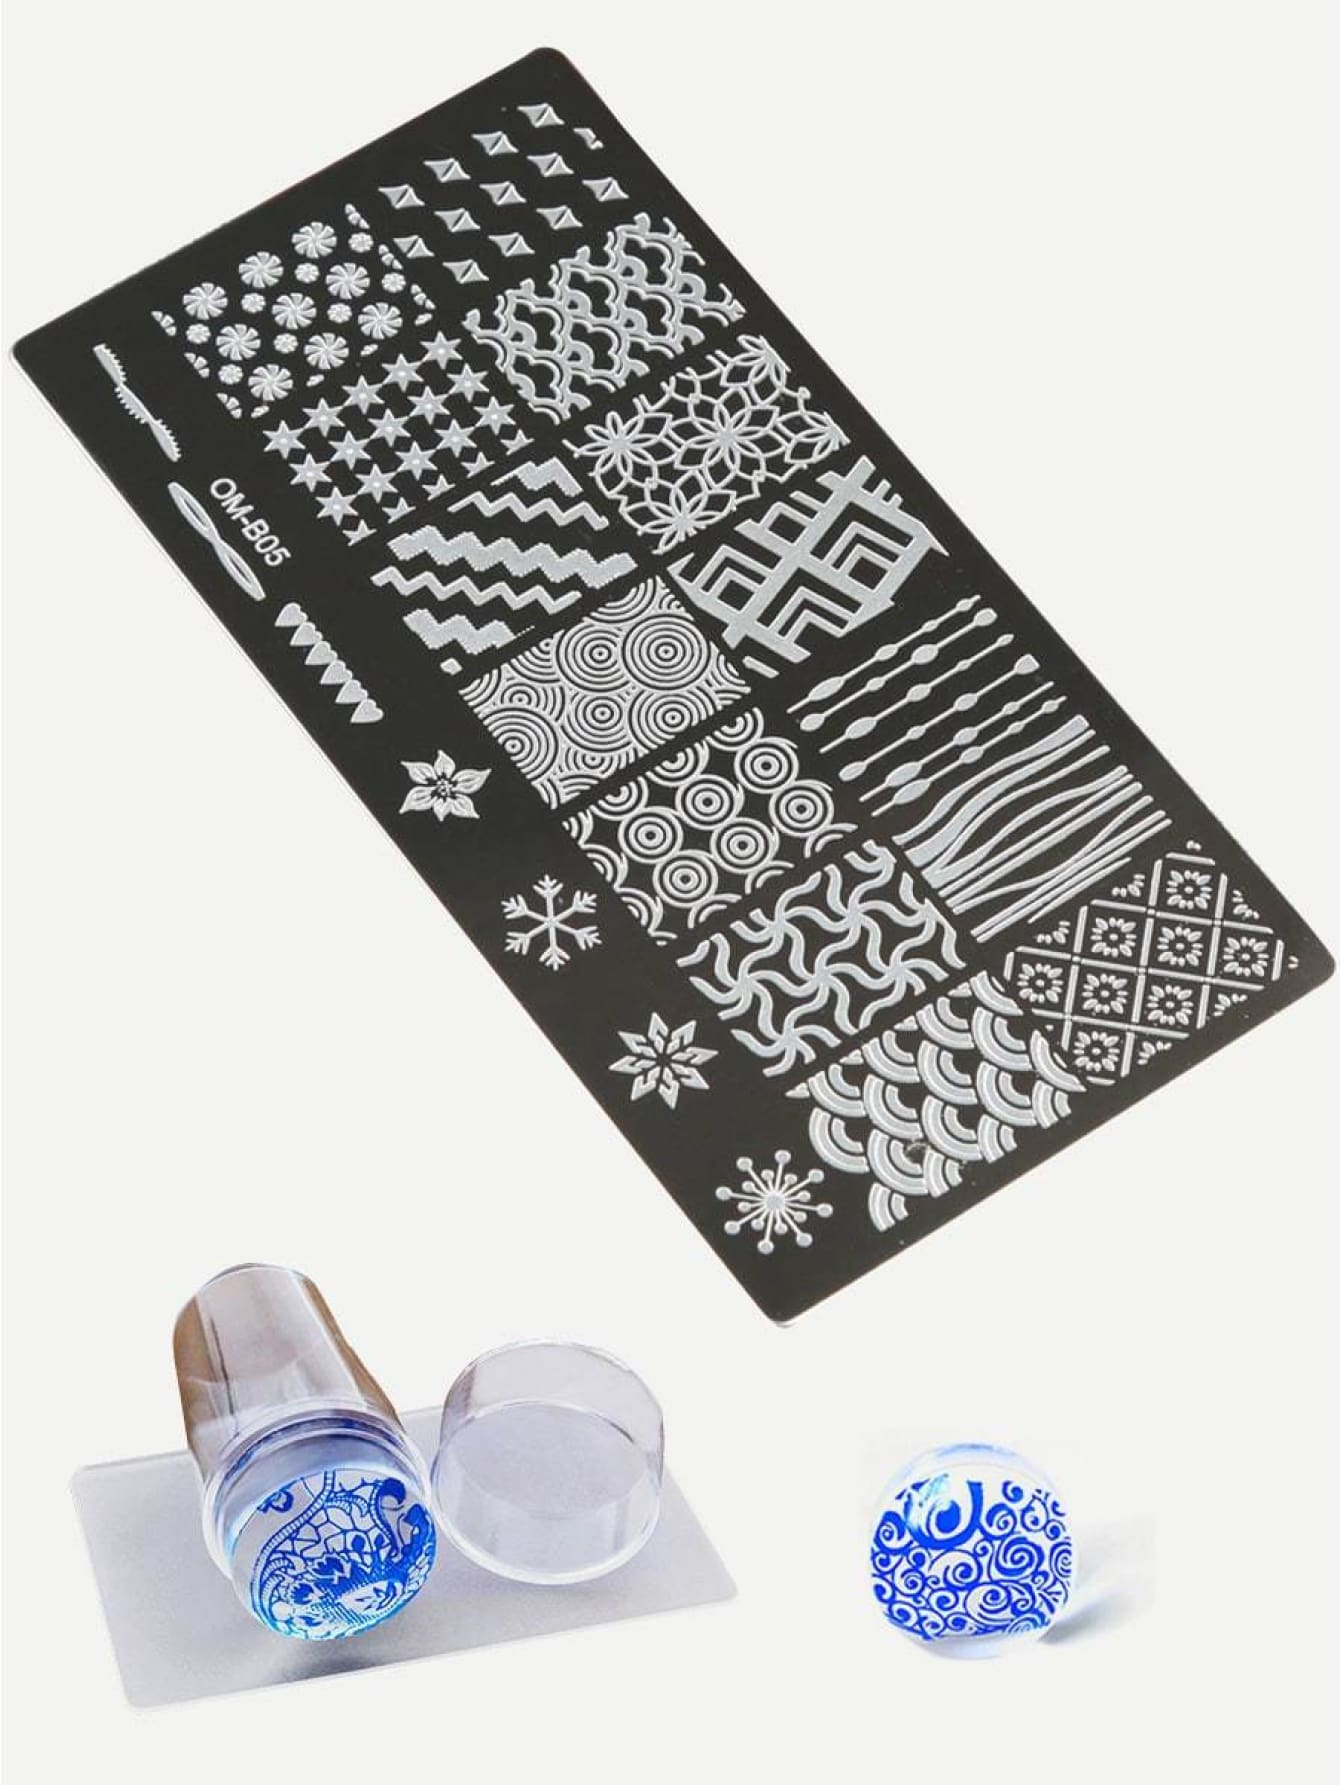 Nail Art Stamping Scraper Plate Tool Set 3Pack - Beauty Tools